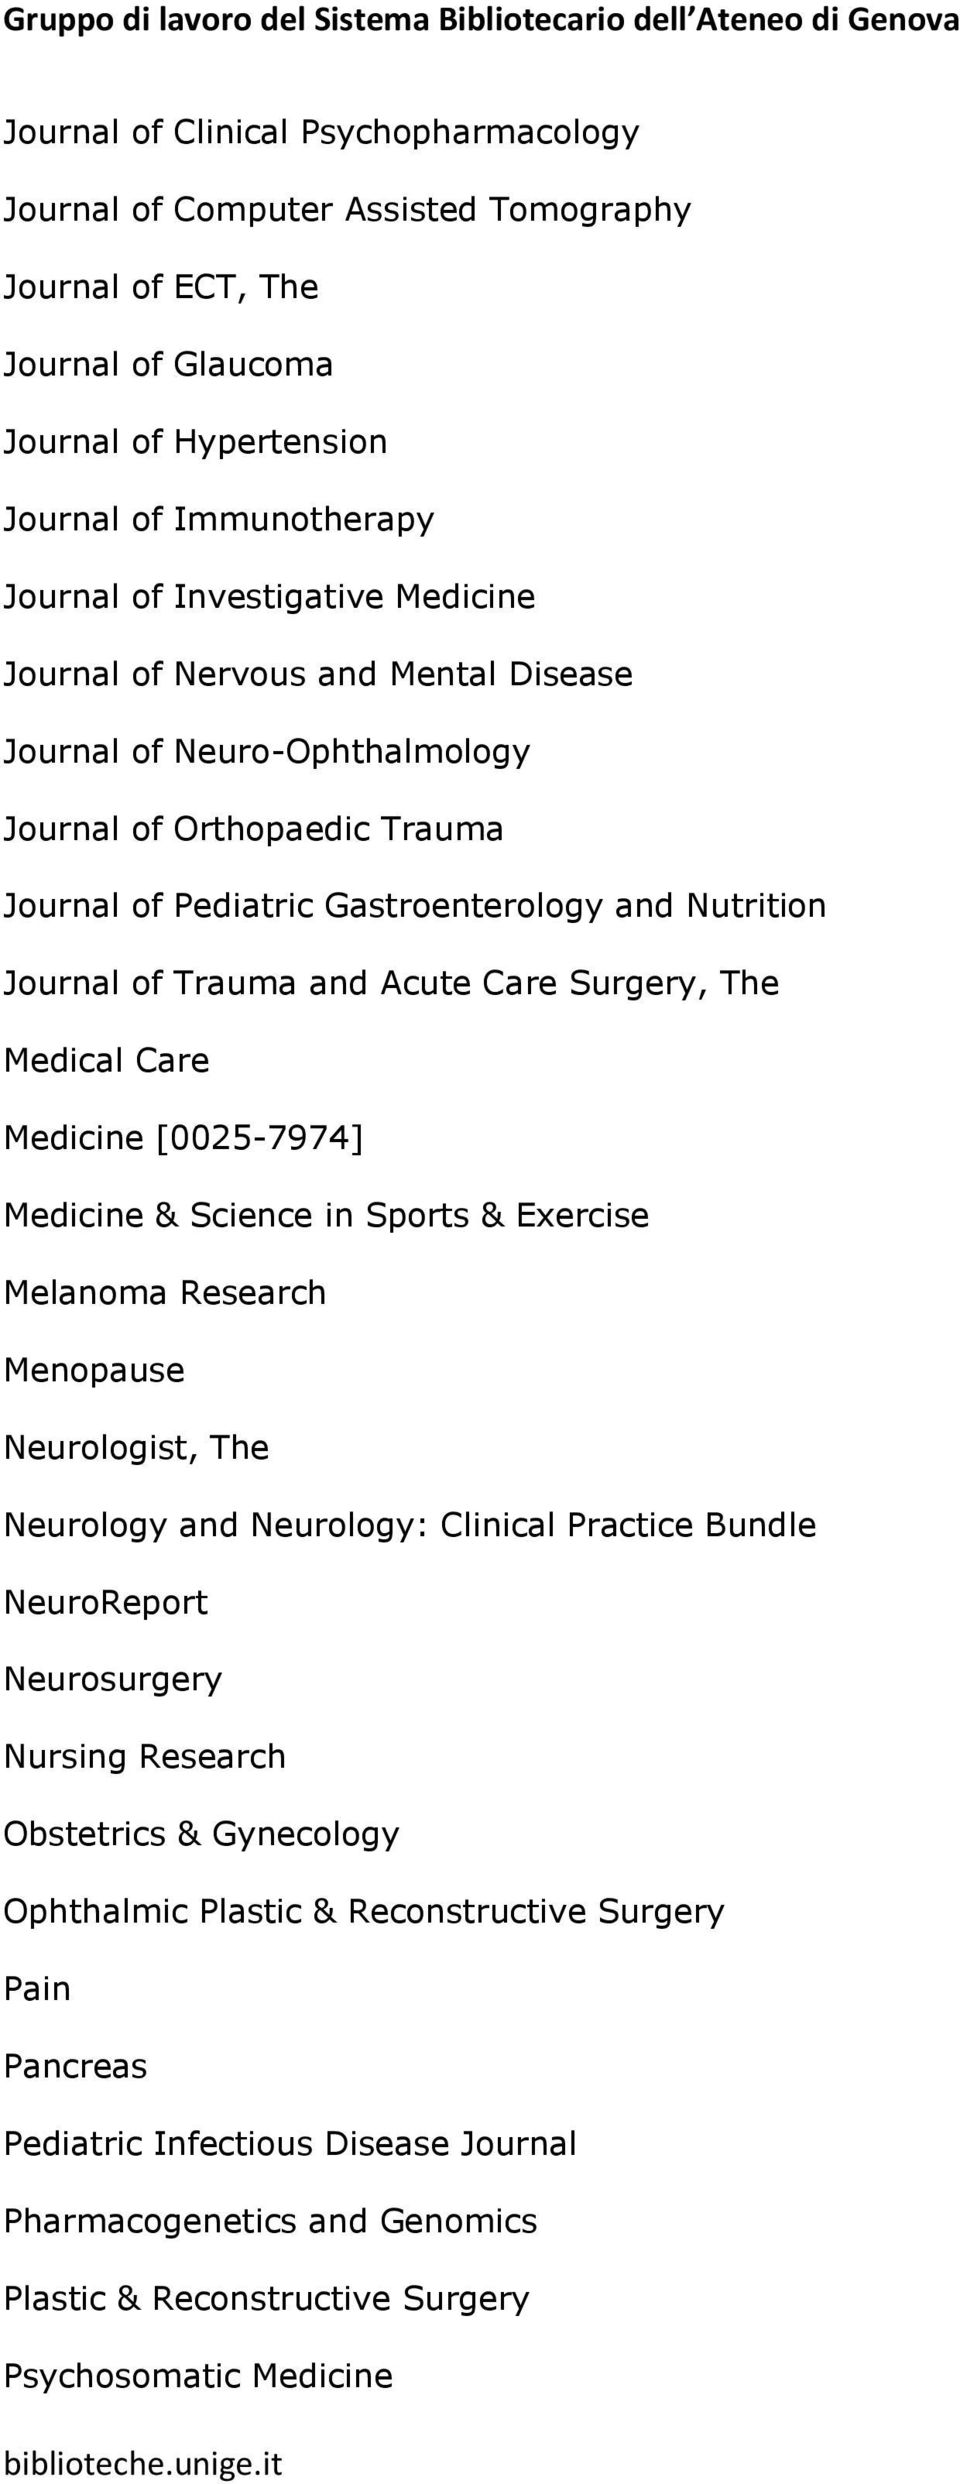 Surgery, The Medical Care Medicine [0025-7974] Medicine & Science in Sports & Exercise Melanoma Research Menopause Neurologist, The Neurology and Neurology: Clinical Practice Bundle NeuroReport